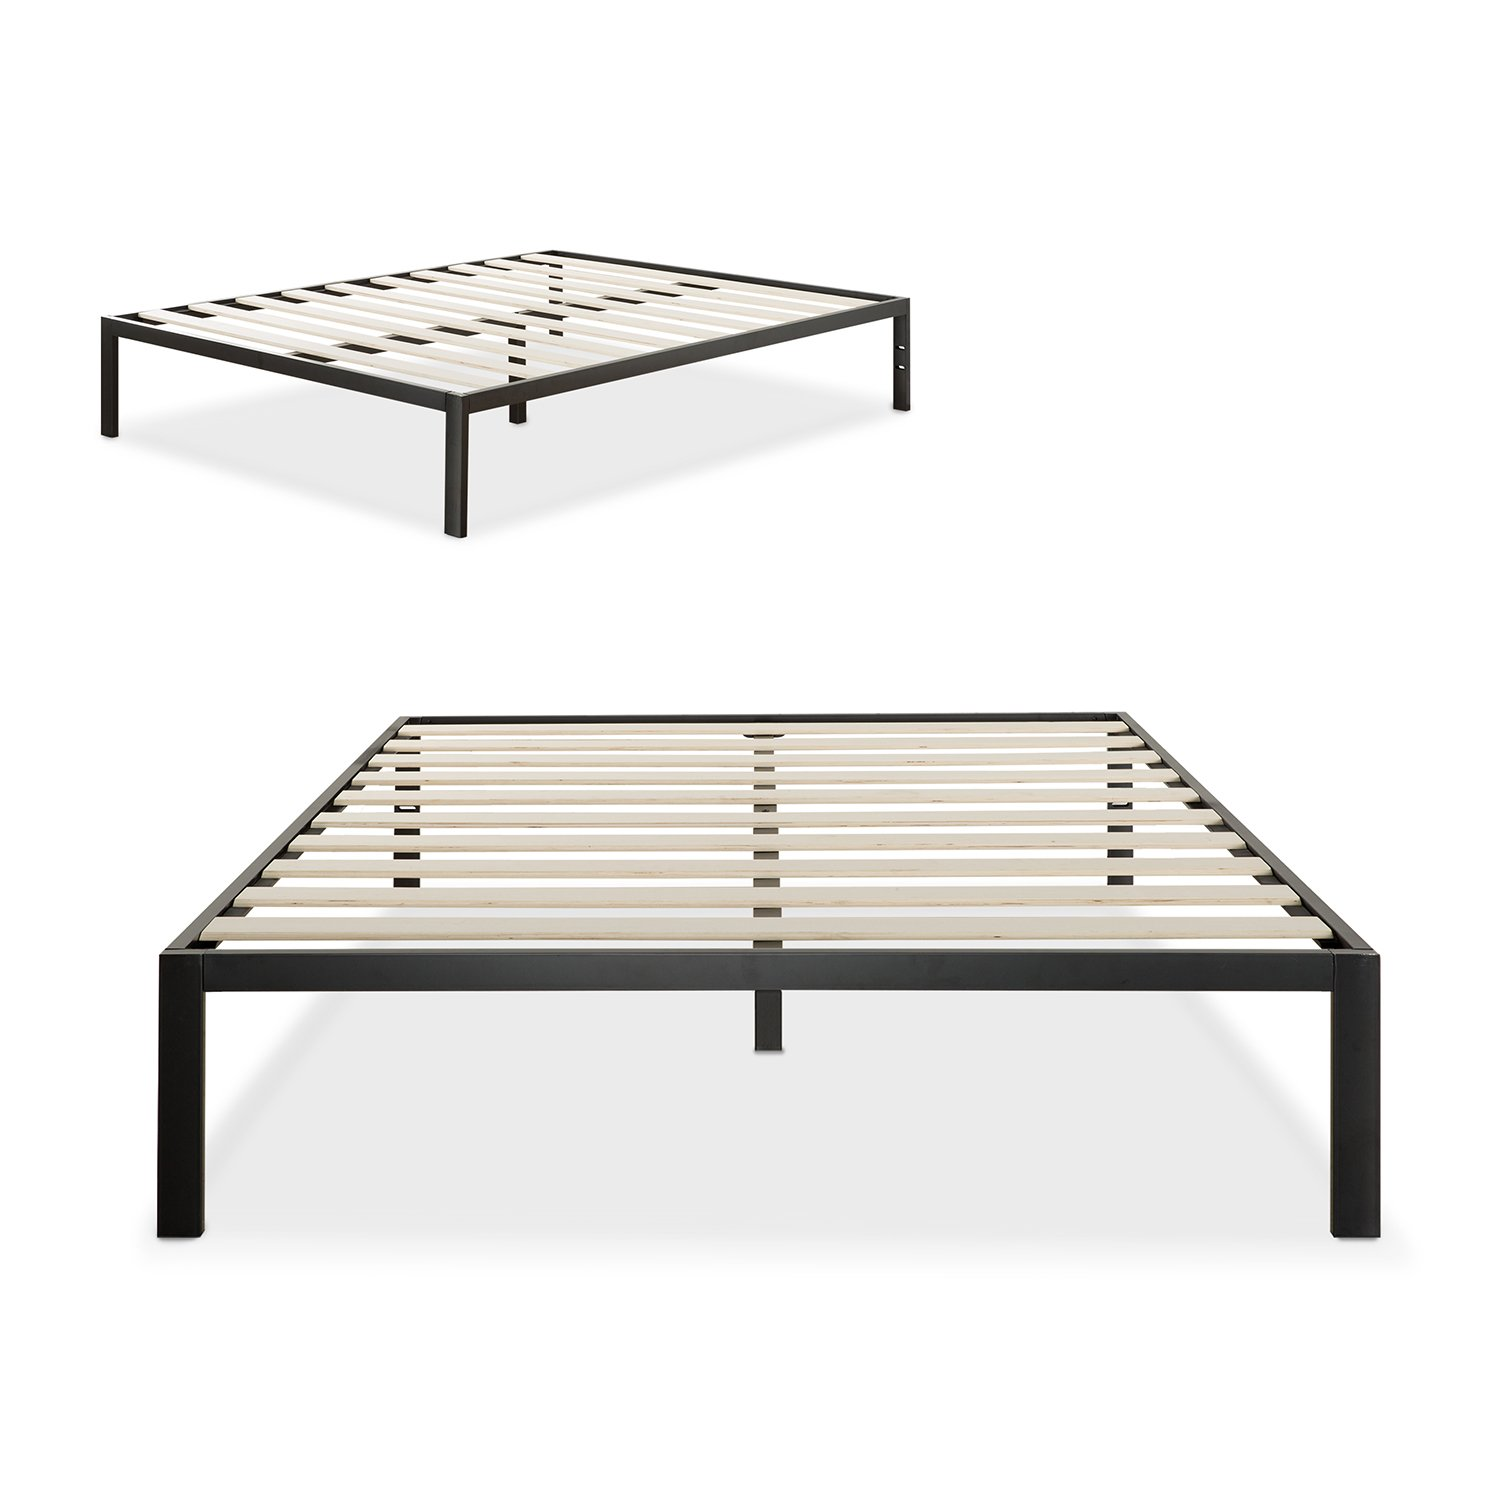 amazoncom zinus modern studio 14 inch platform 1500 metal bed frame mattress foundation no boxspring needed wooden slat support black - Metal Bed Frames